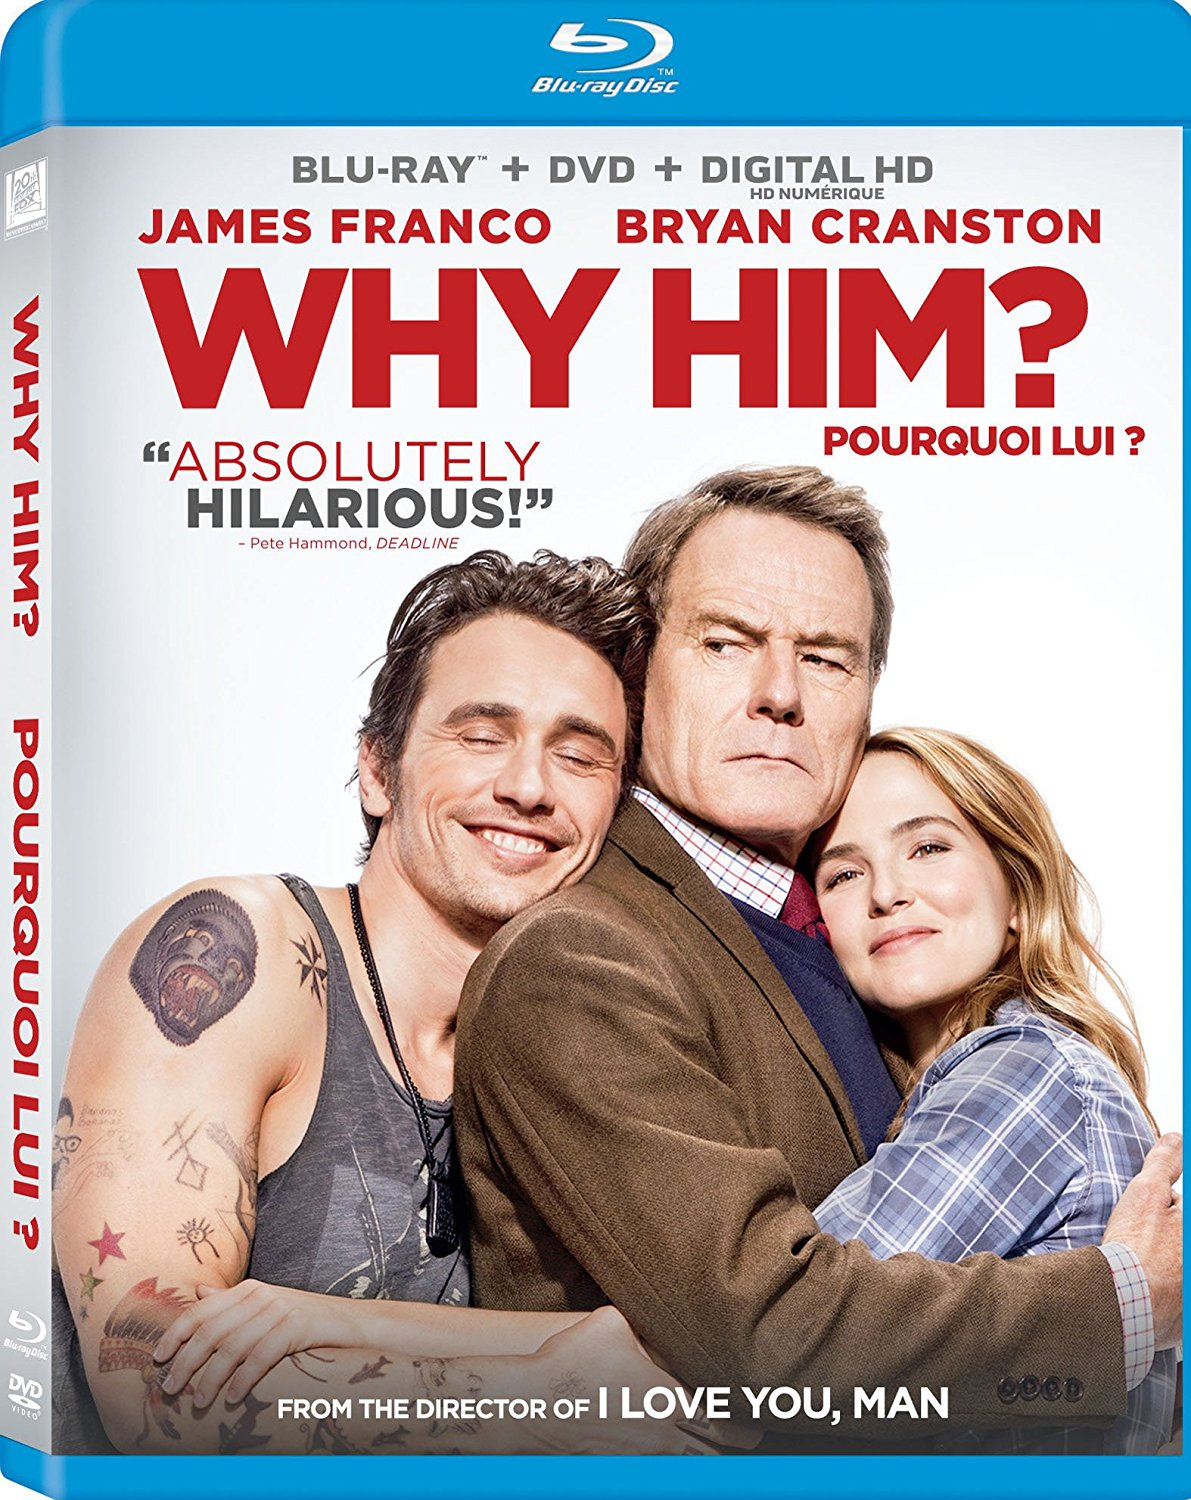 Why Him? new on DVD